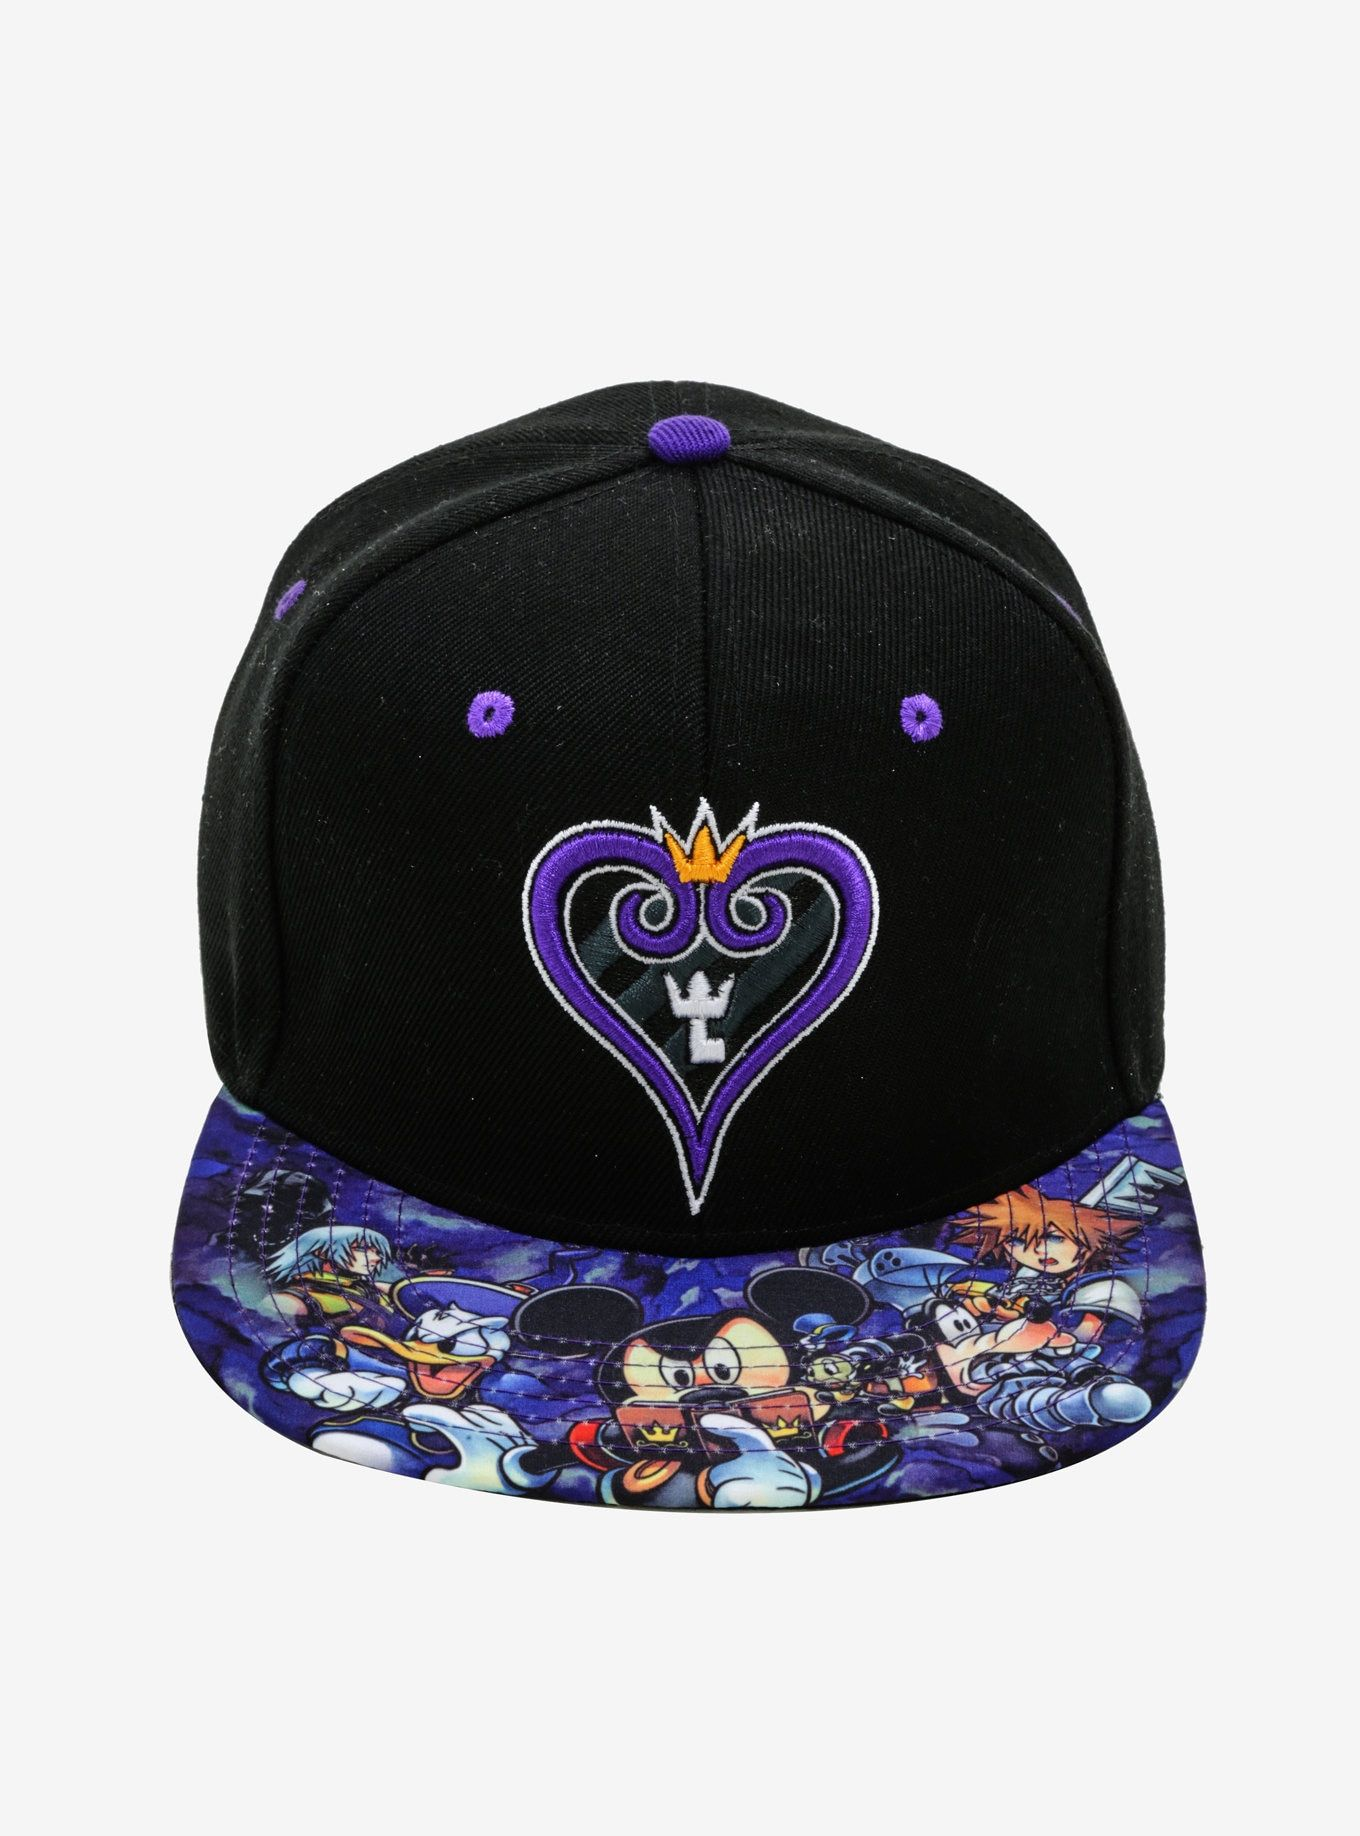 a768205b Disney Kingdom Hearts Sublimated Bill Snapback Hat in 2019 | Clothes ...